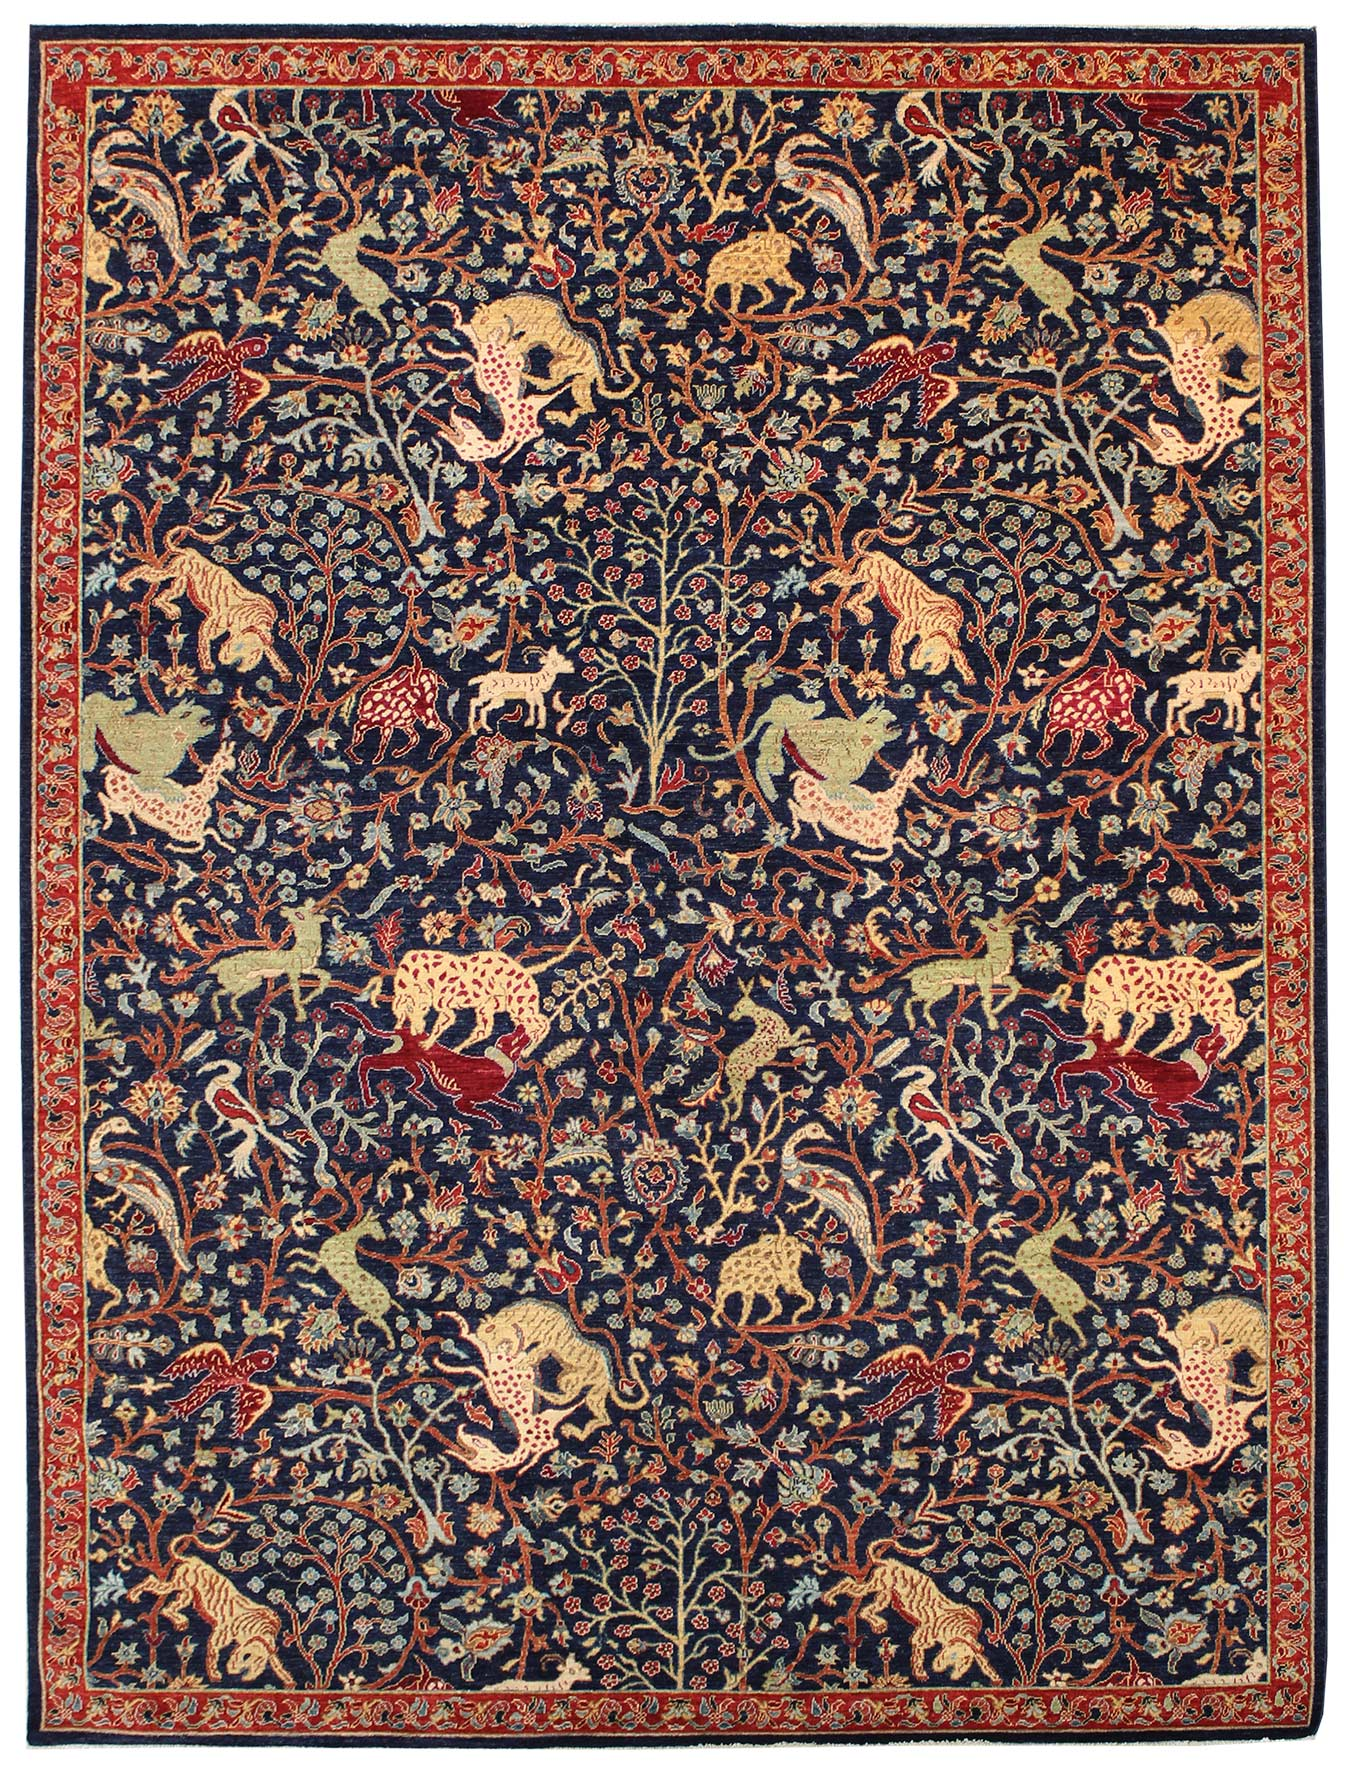 Hunting Tabriz Handwoven Traditional Rug